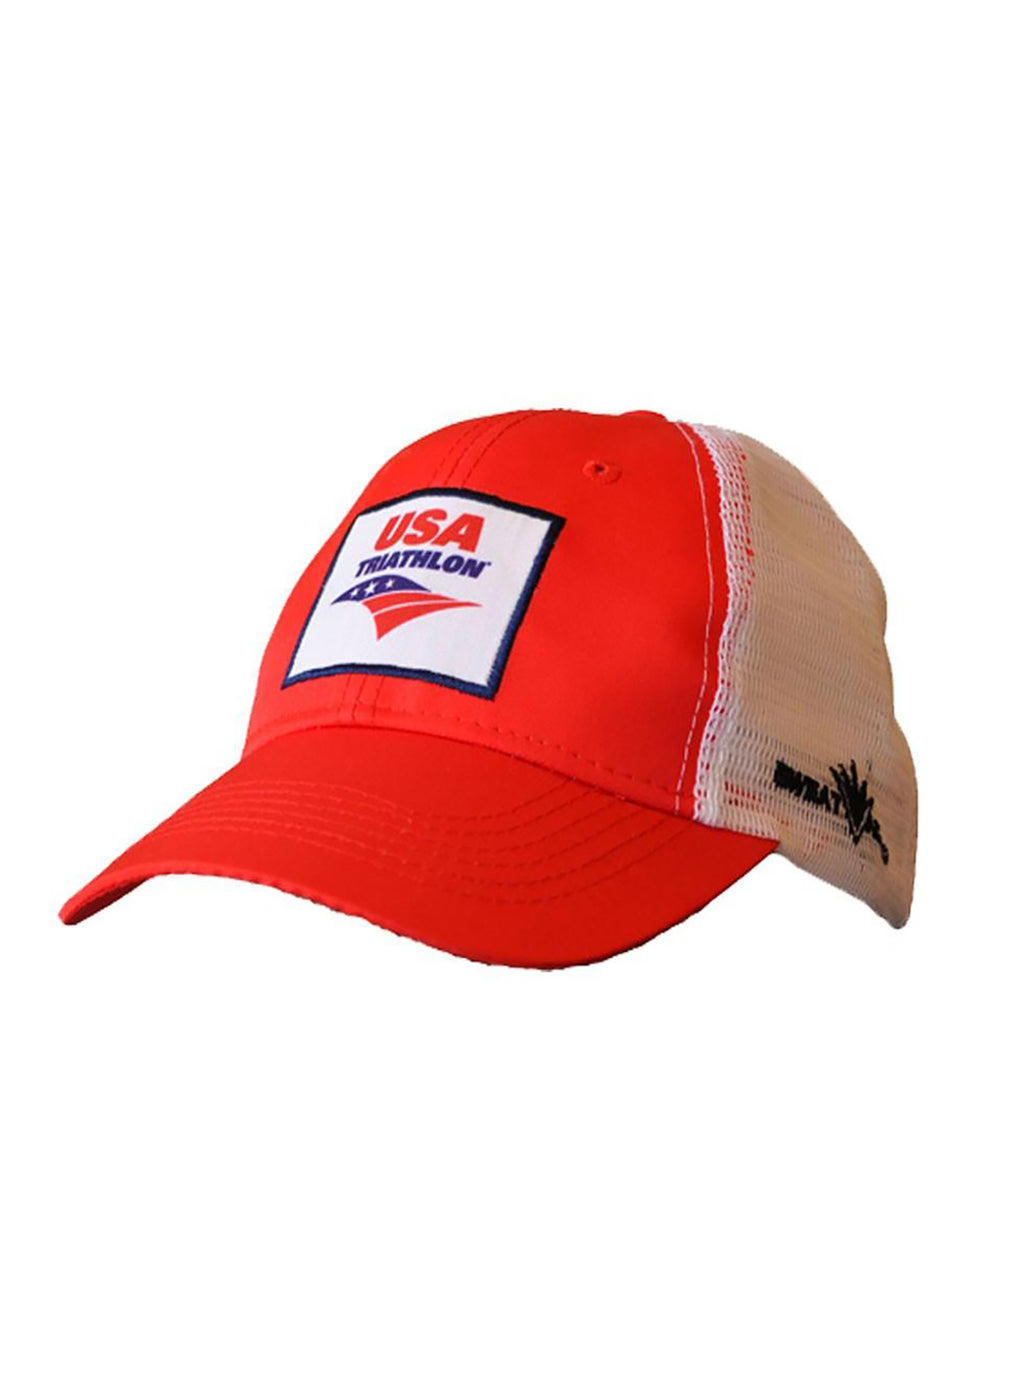 Red USA Triathlon Performance Trucker Hat